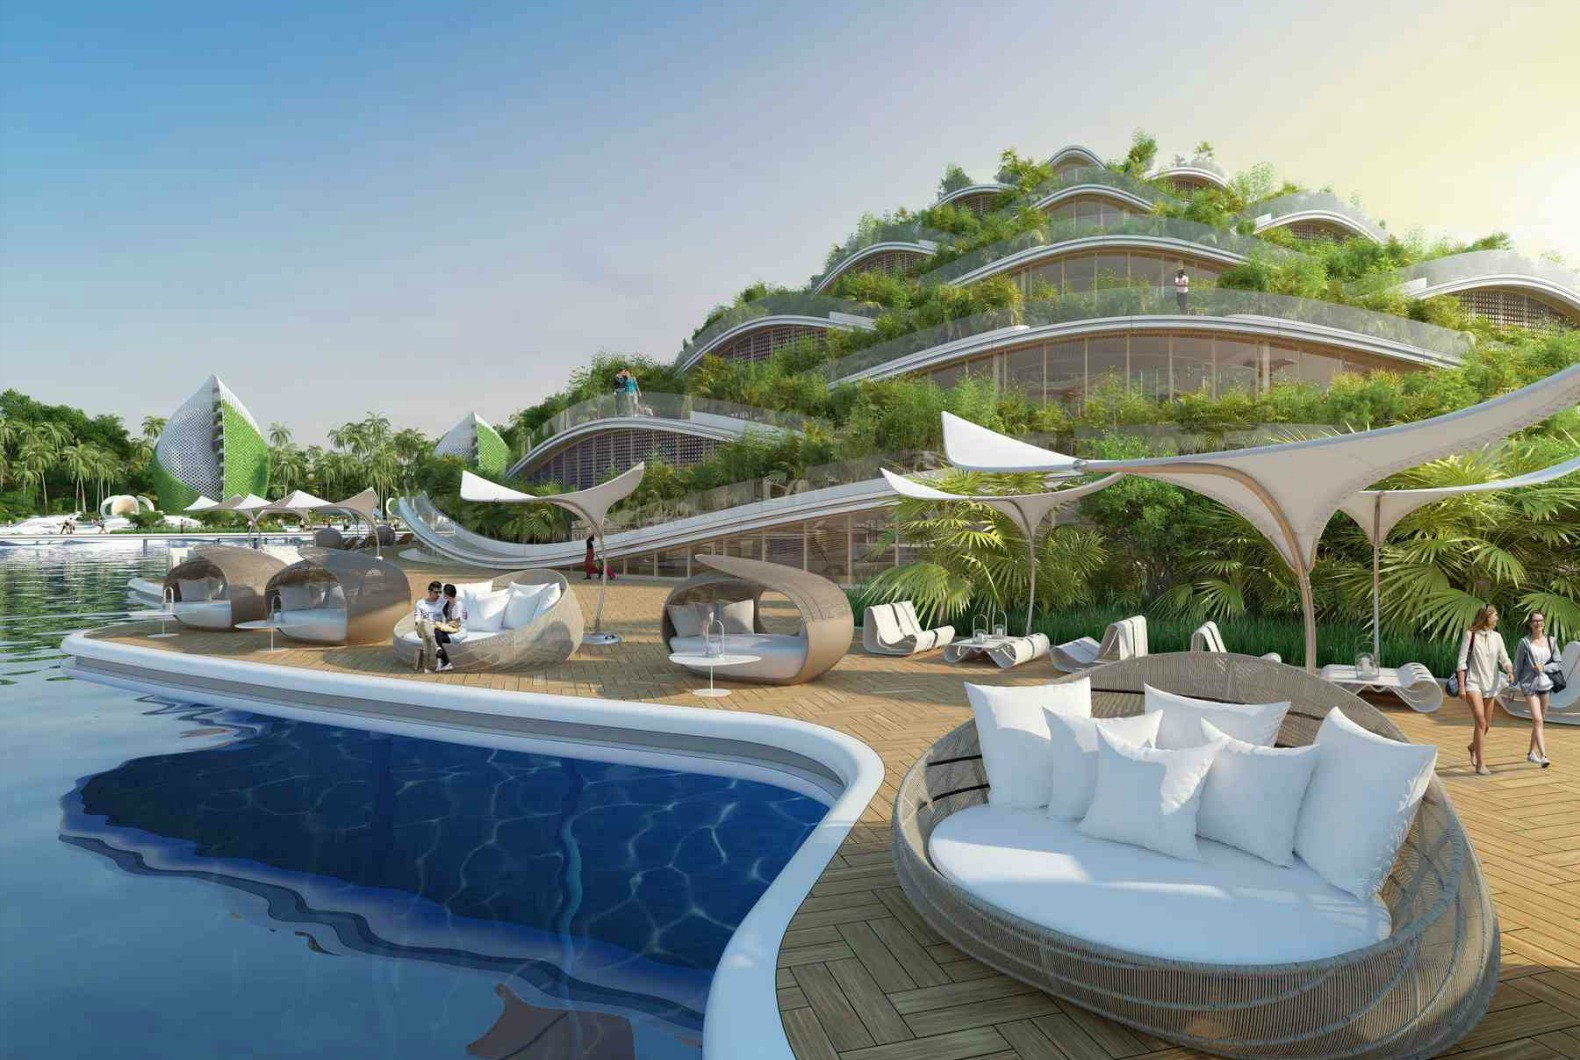 Desain Resort Vincent Callebaut 39s Visionary Eco Resort For The